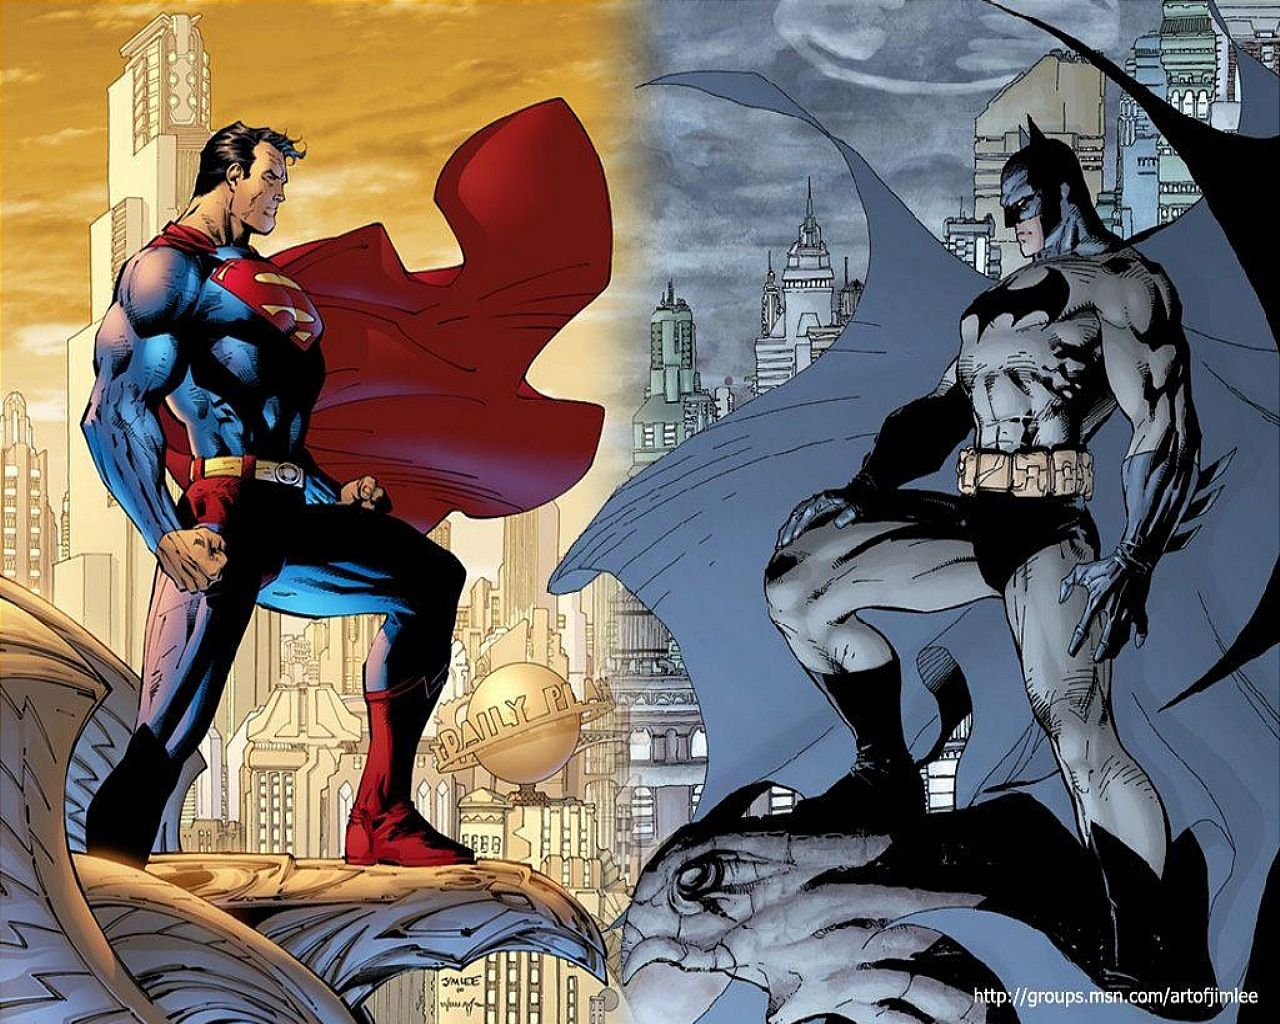 Superman vs Batman Wallpapers, Photos, Pictures and Backgrounds